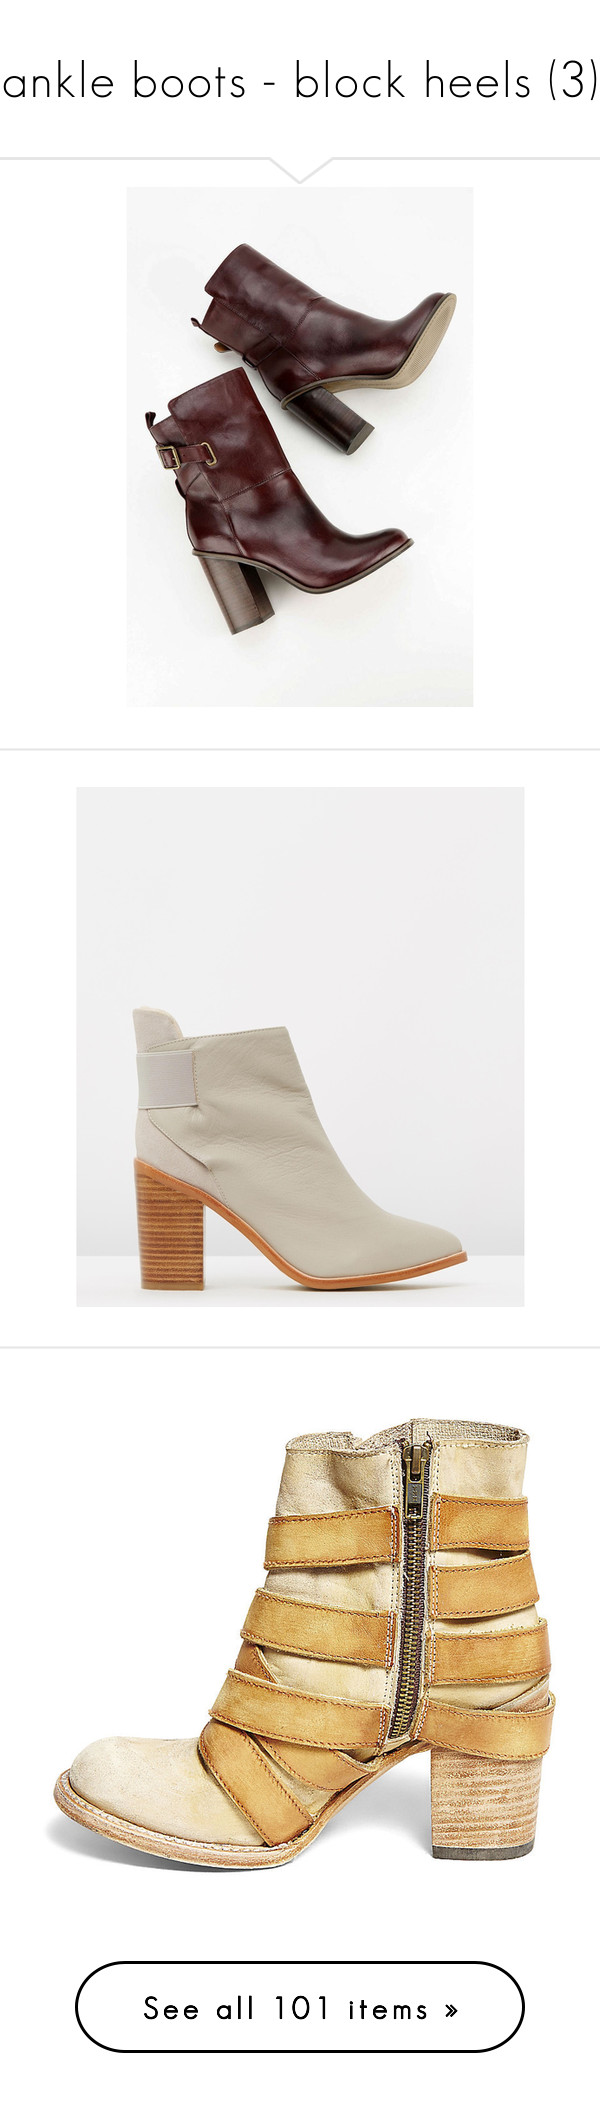 """ankle boots - block heels (3)"" by bonadea007 ❤ liked on Polyvore featuring shoes, boots, ankle booties, ankle boots, leather high heel boots, leather bootie, leather booties, steve madden boots, high heel booties and steve madden booties"